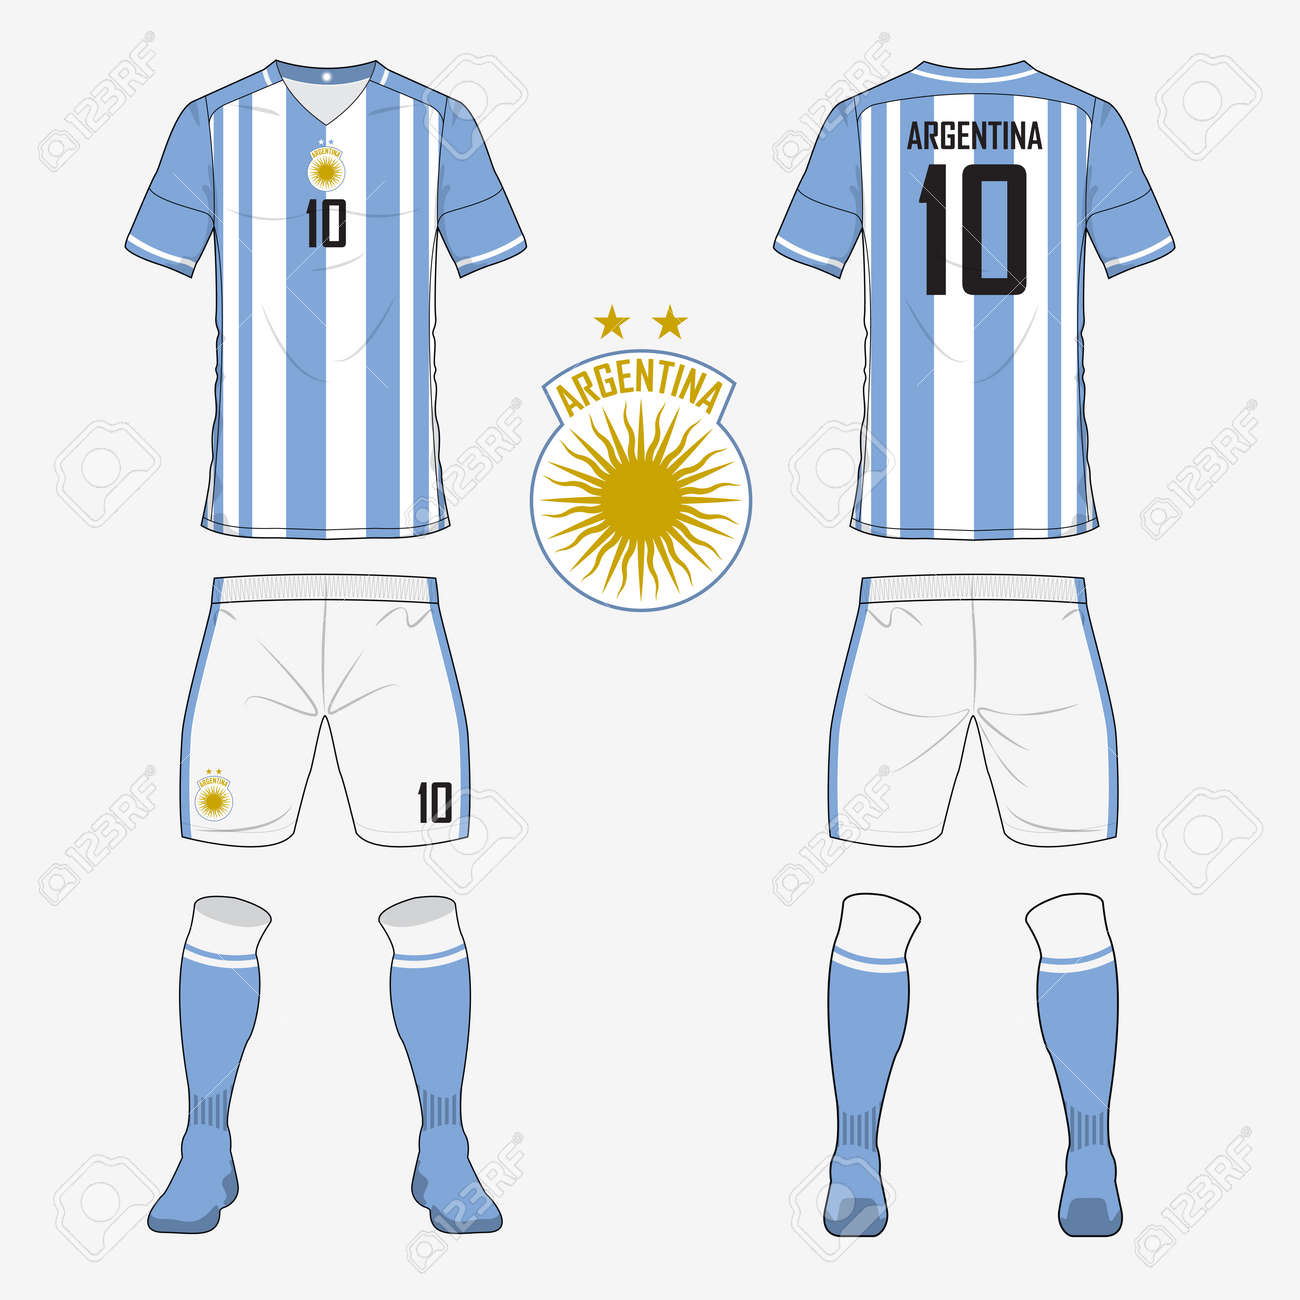 b871d45edbd Set of soccer jersey or football kit template for Argentina national  football team. Front and